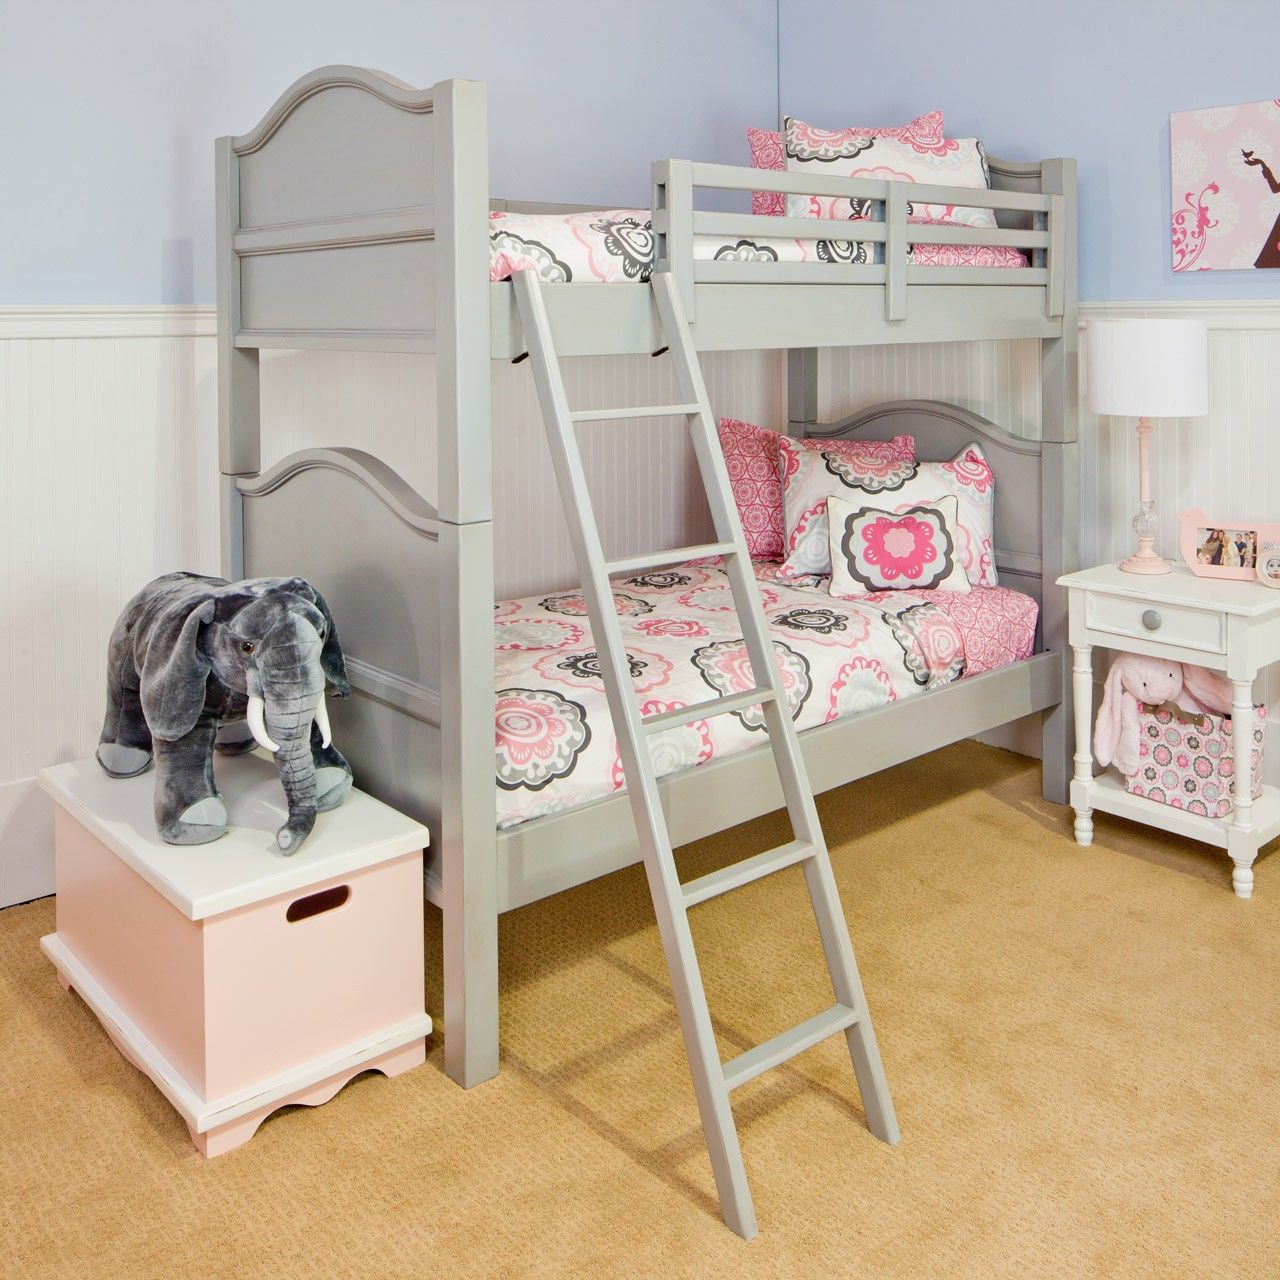 Bunkbed Pictures hampton bunk bed in french greynewport cottages | bunk up